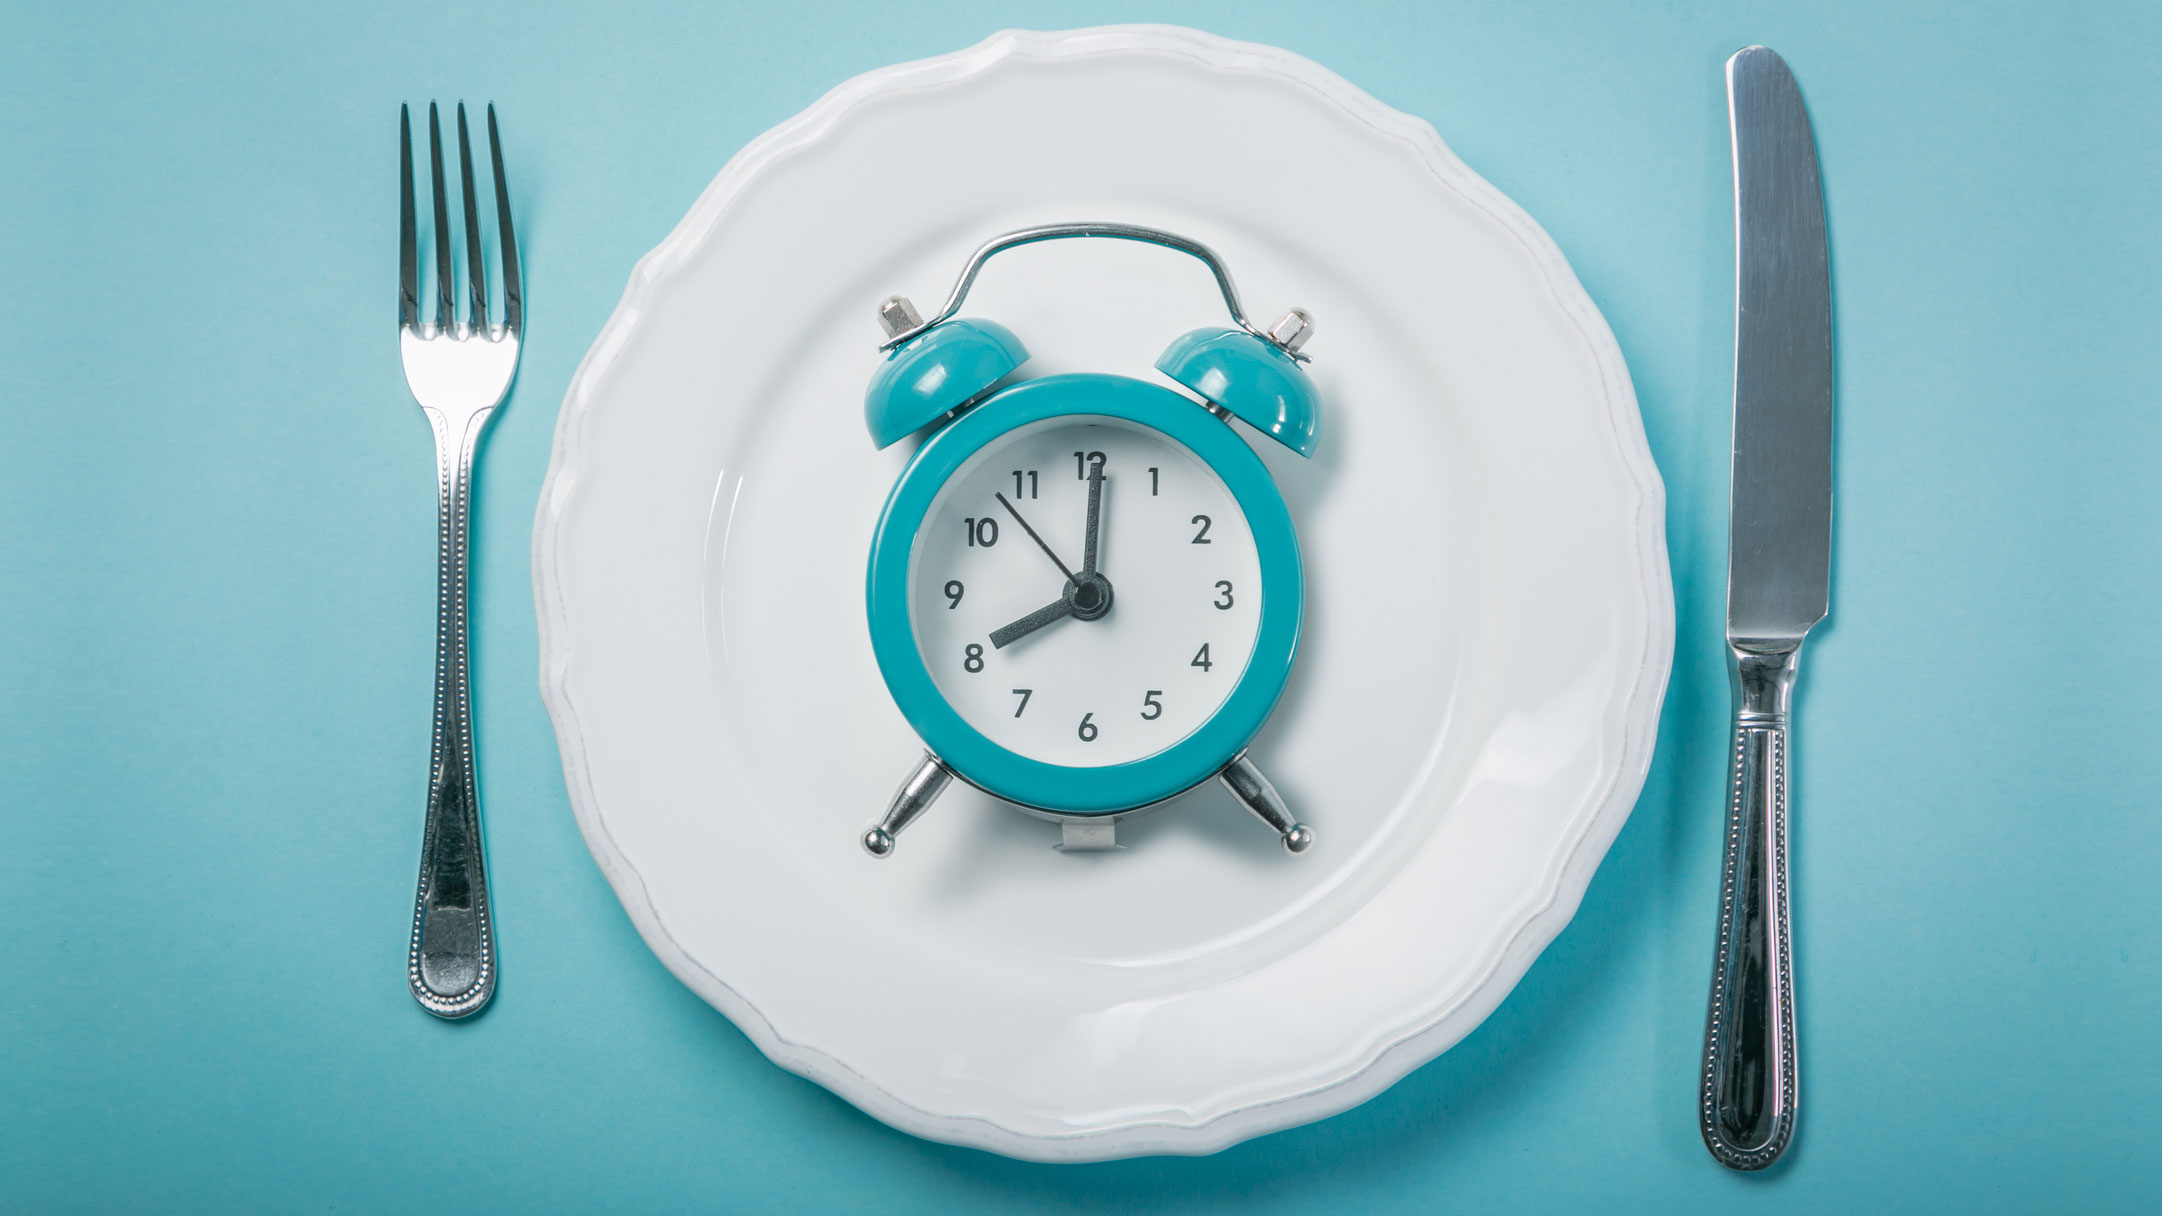 Alternate-day fasting trial finds health benefits